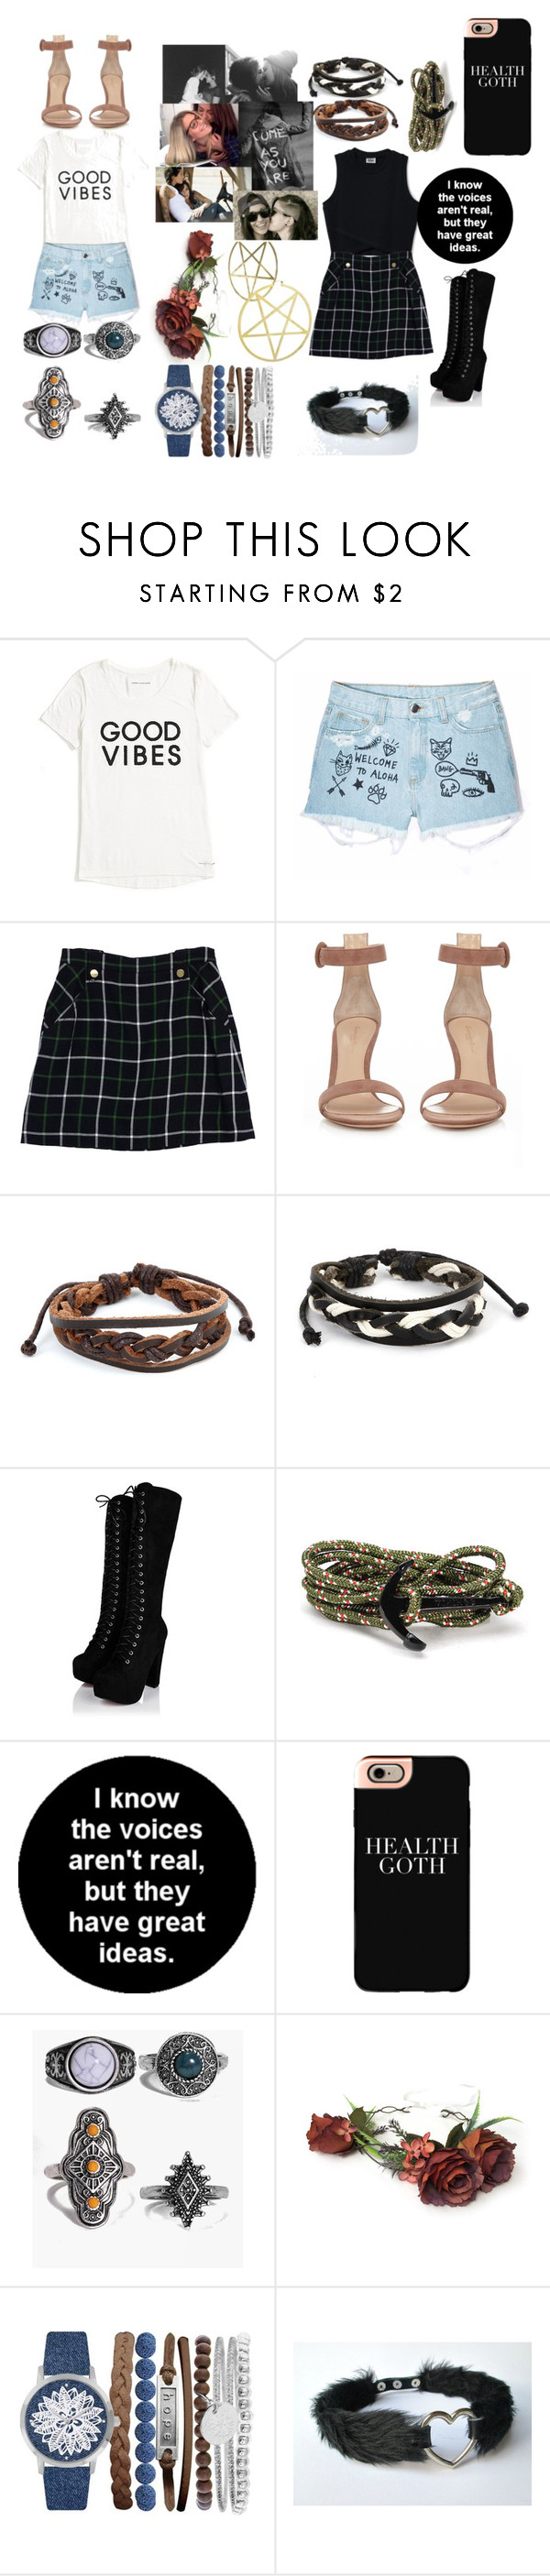 """🎶I'm in love with a monster🎶"" by the-incredibles ❤ liked on Polyvore featuring Tommy Hilfiger, Aloha From Deer, Kate Spade, Gianvito Rossi, West Coast Jewelry, Casetify, Boohoo and Jessica Carlyle"